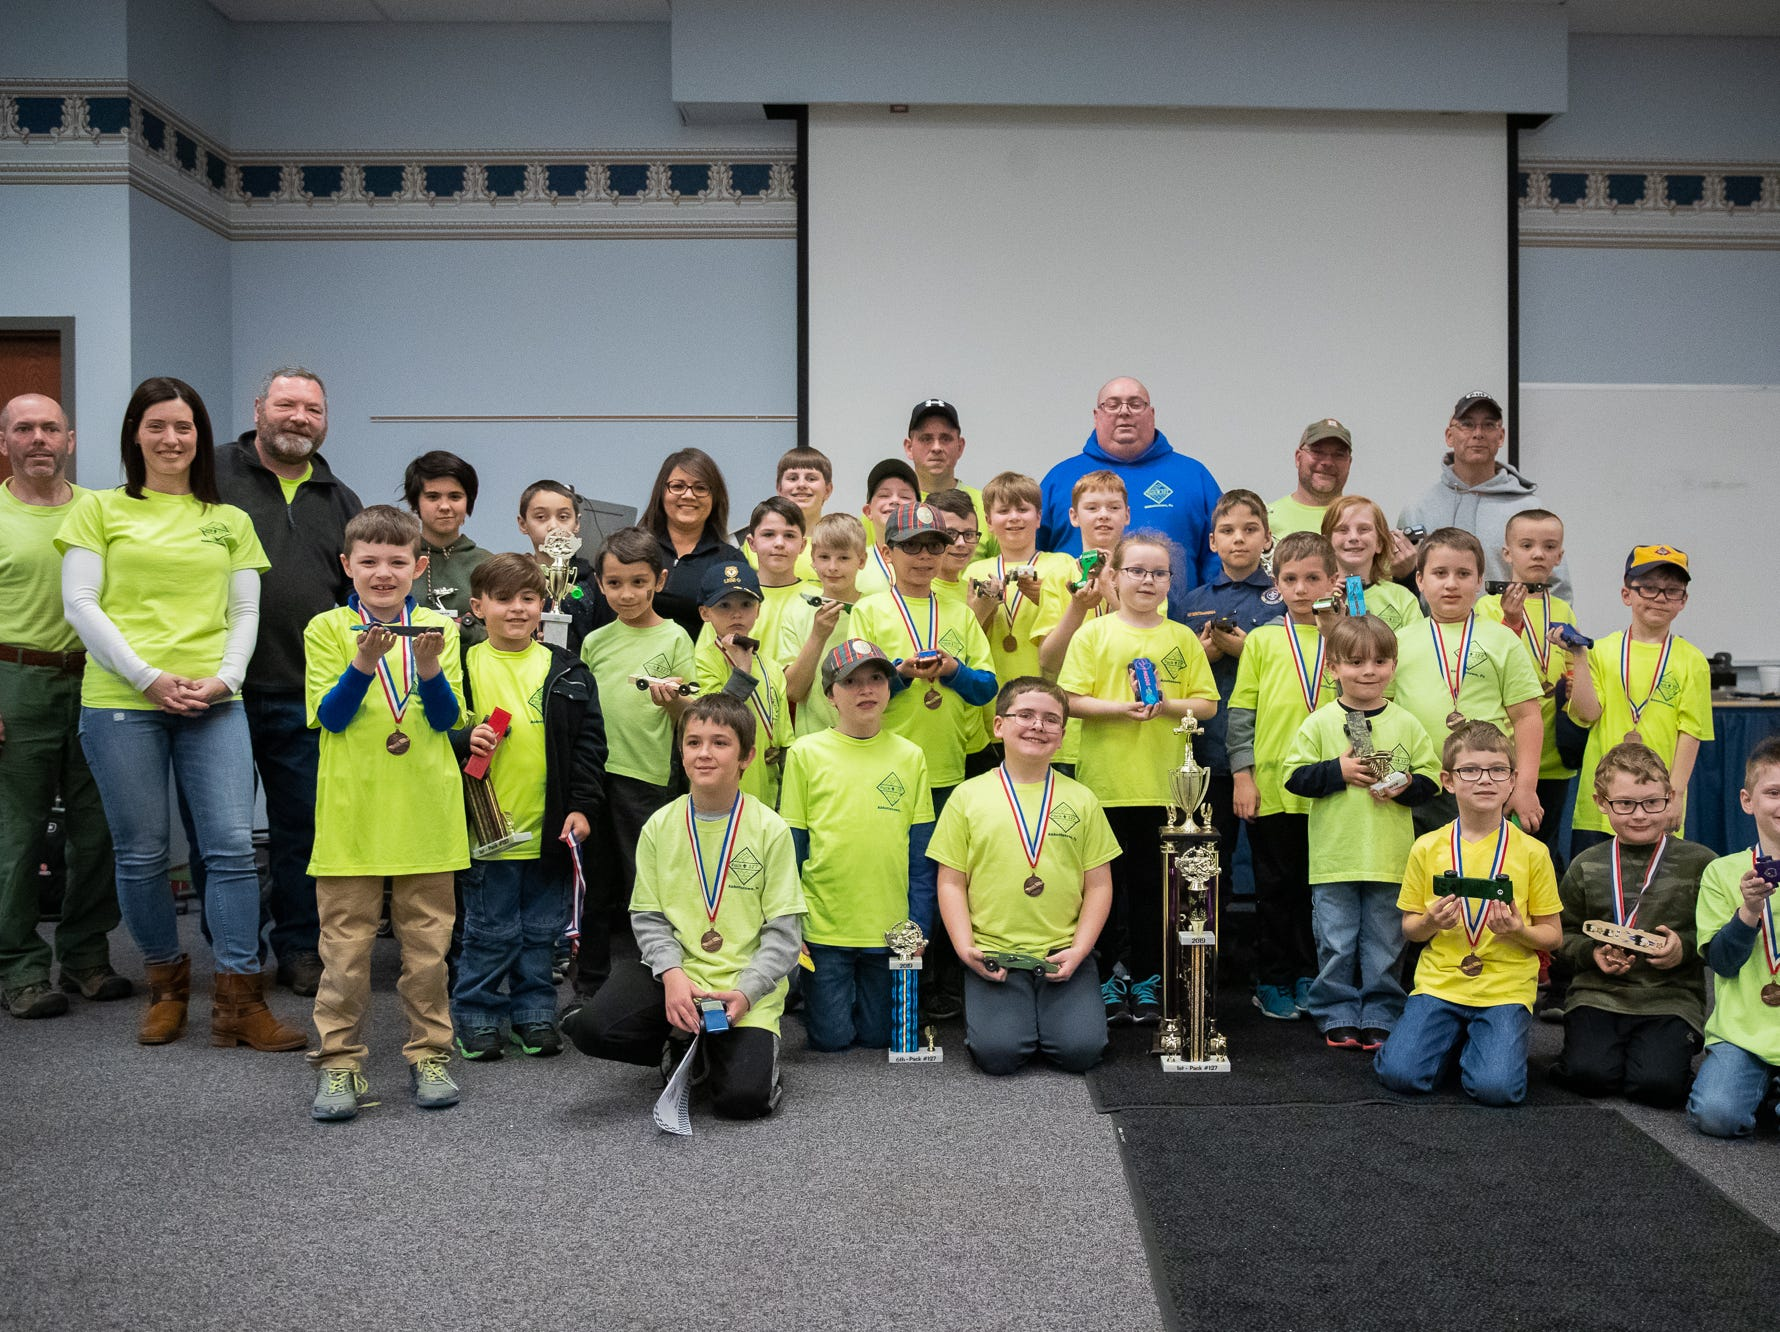 Cub scouts pack 127 held their annual Pine Wood Derby event at Lincoln Intermediate Unit 12, Sunday, Feb. 10 in New Oxford. The scouts had a month to design their custom cars to race in the event.